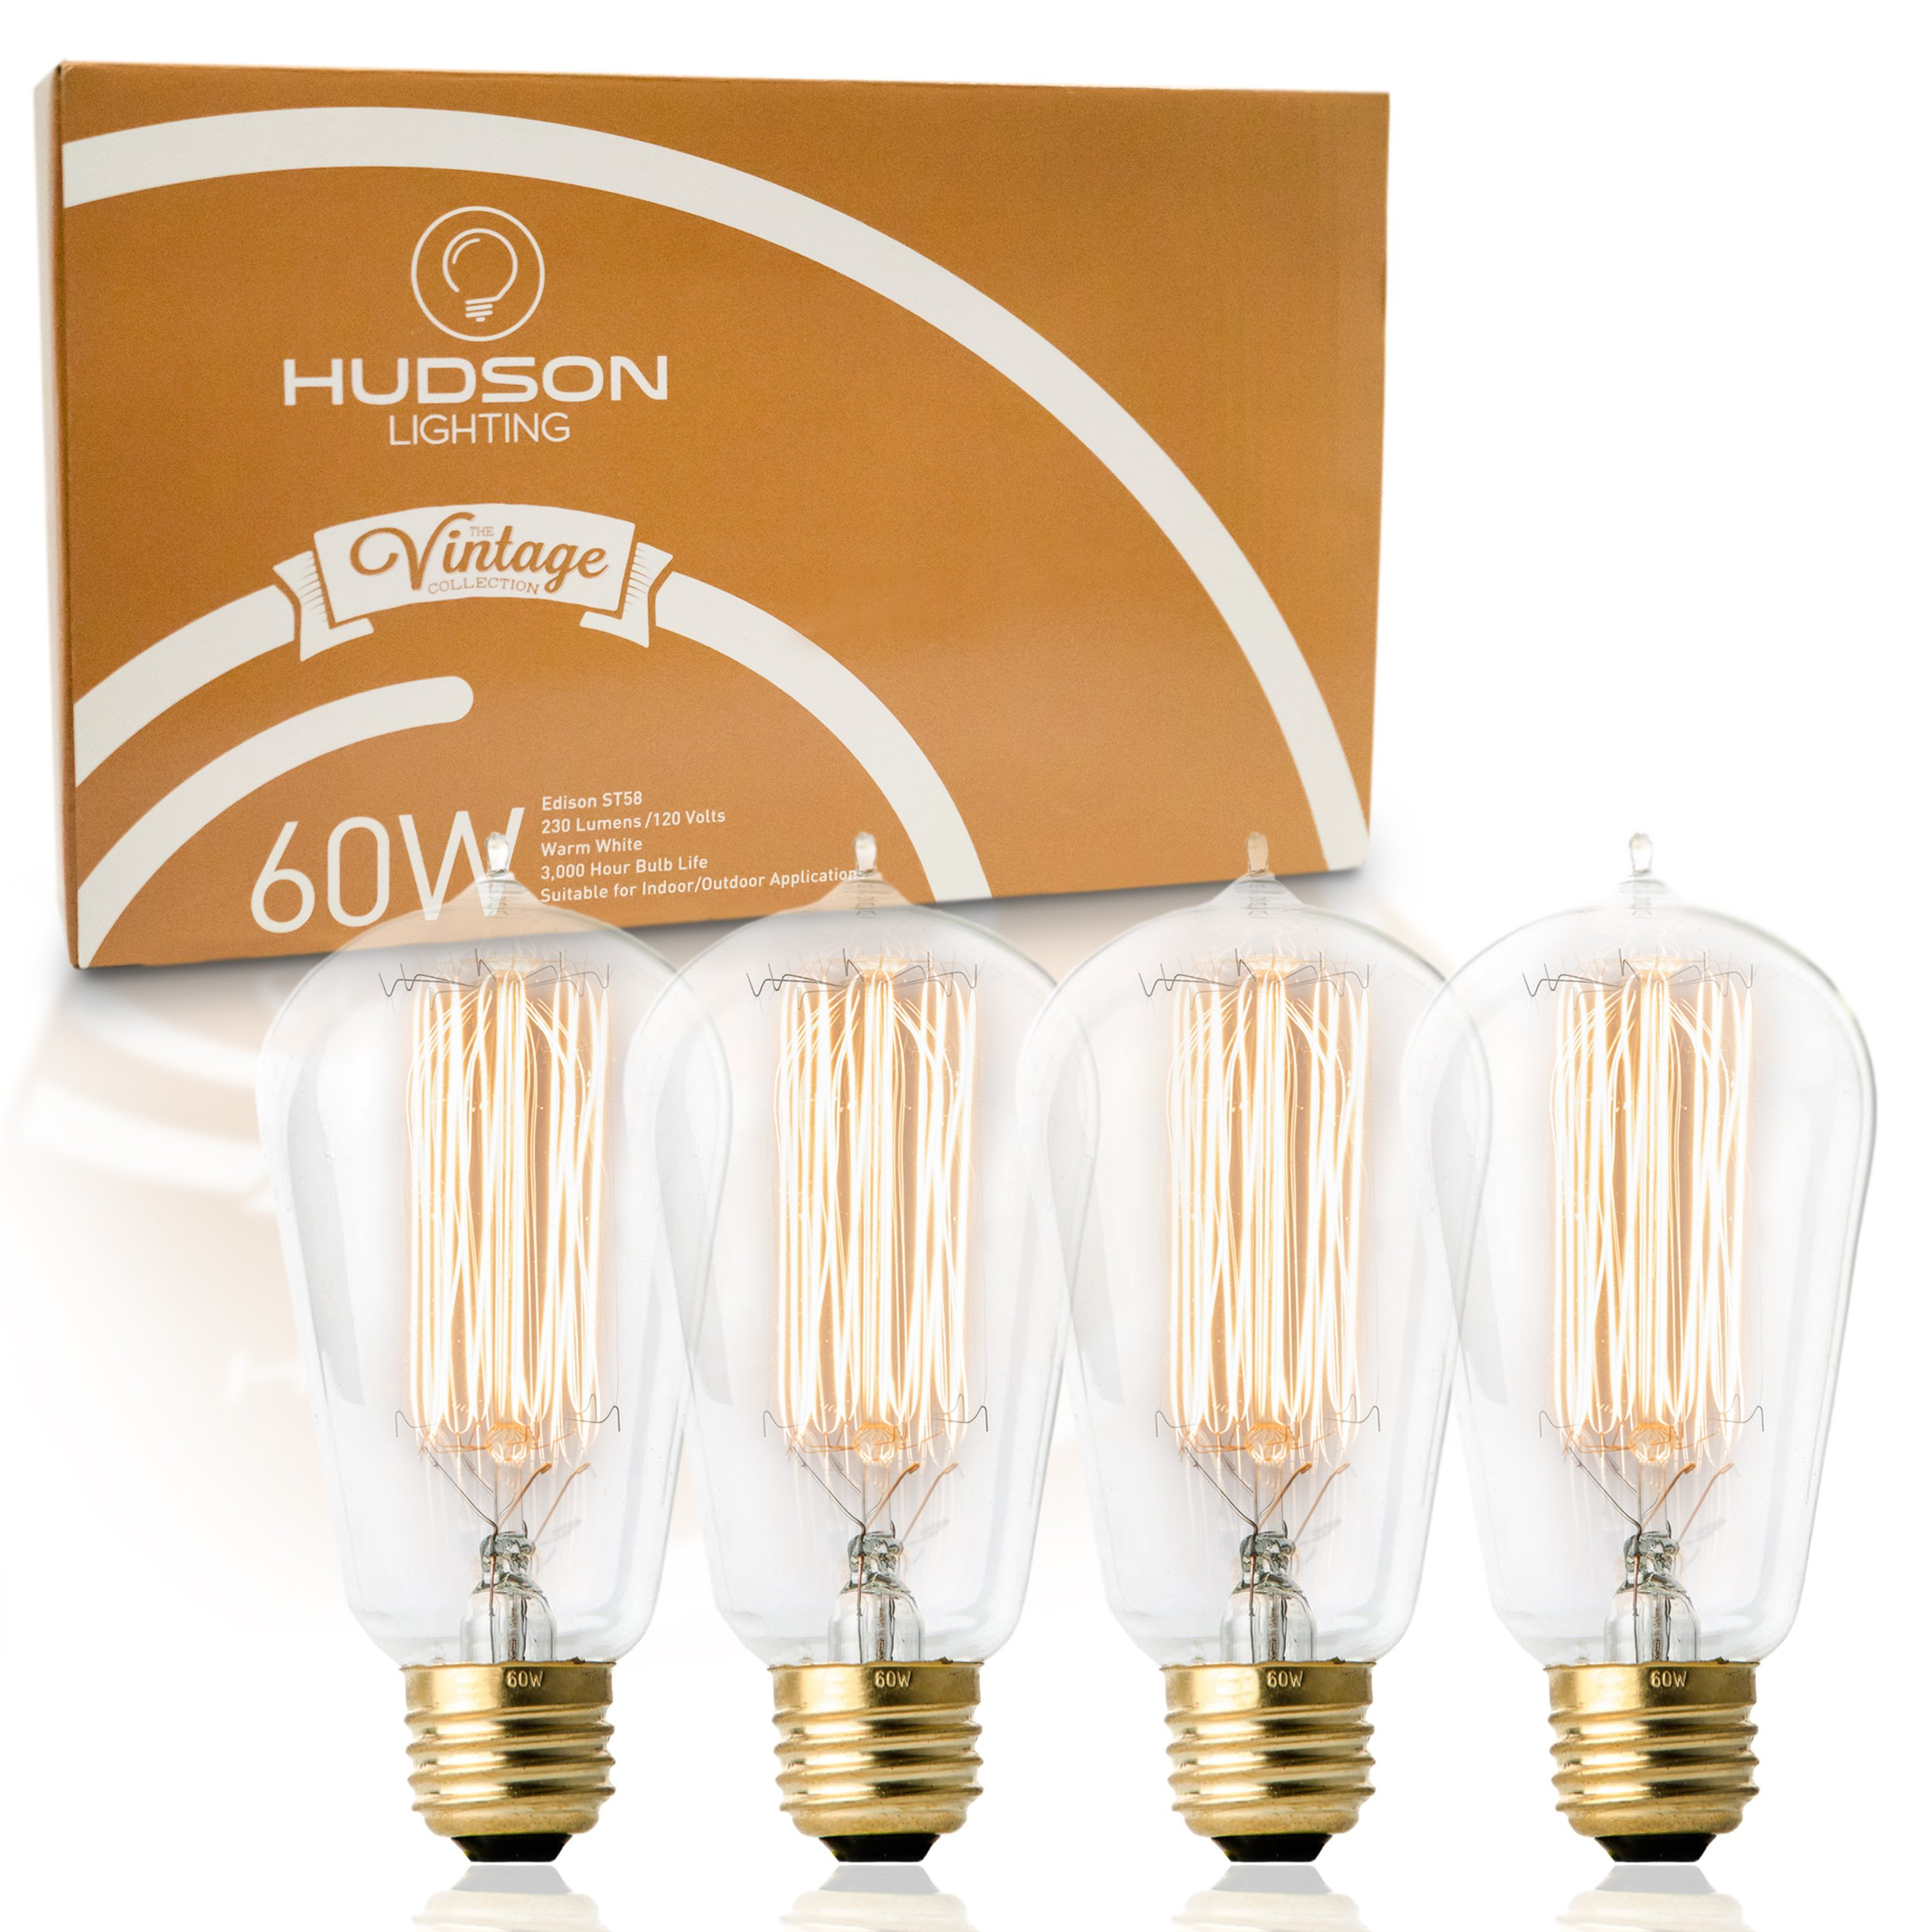 Vintage Incandescent Edison Bulb Set: 60 Watt, 2100K Warm White Edison Light Bulbs - E26 Base - 230 Lumens - Clear Glass - Dimmable Antique Exposed Filament - ST58 Decorative Lightbulbs - 4 Pack by HUDSON LIGHTING (Image #1)